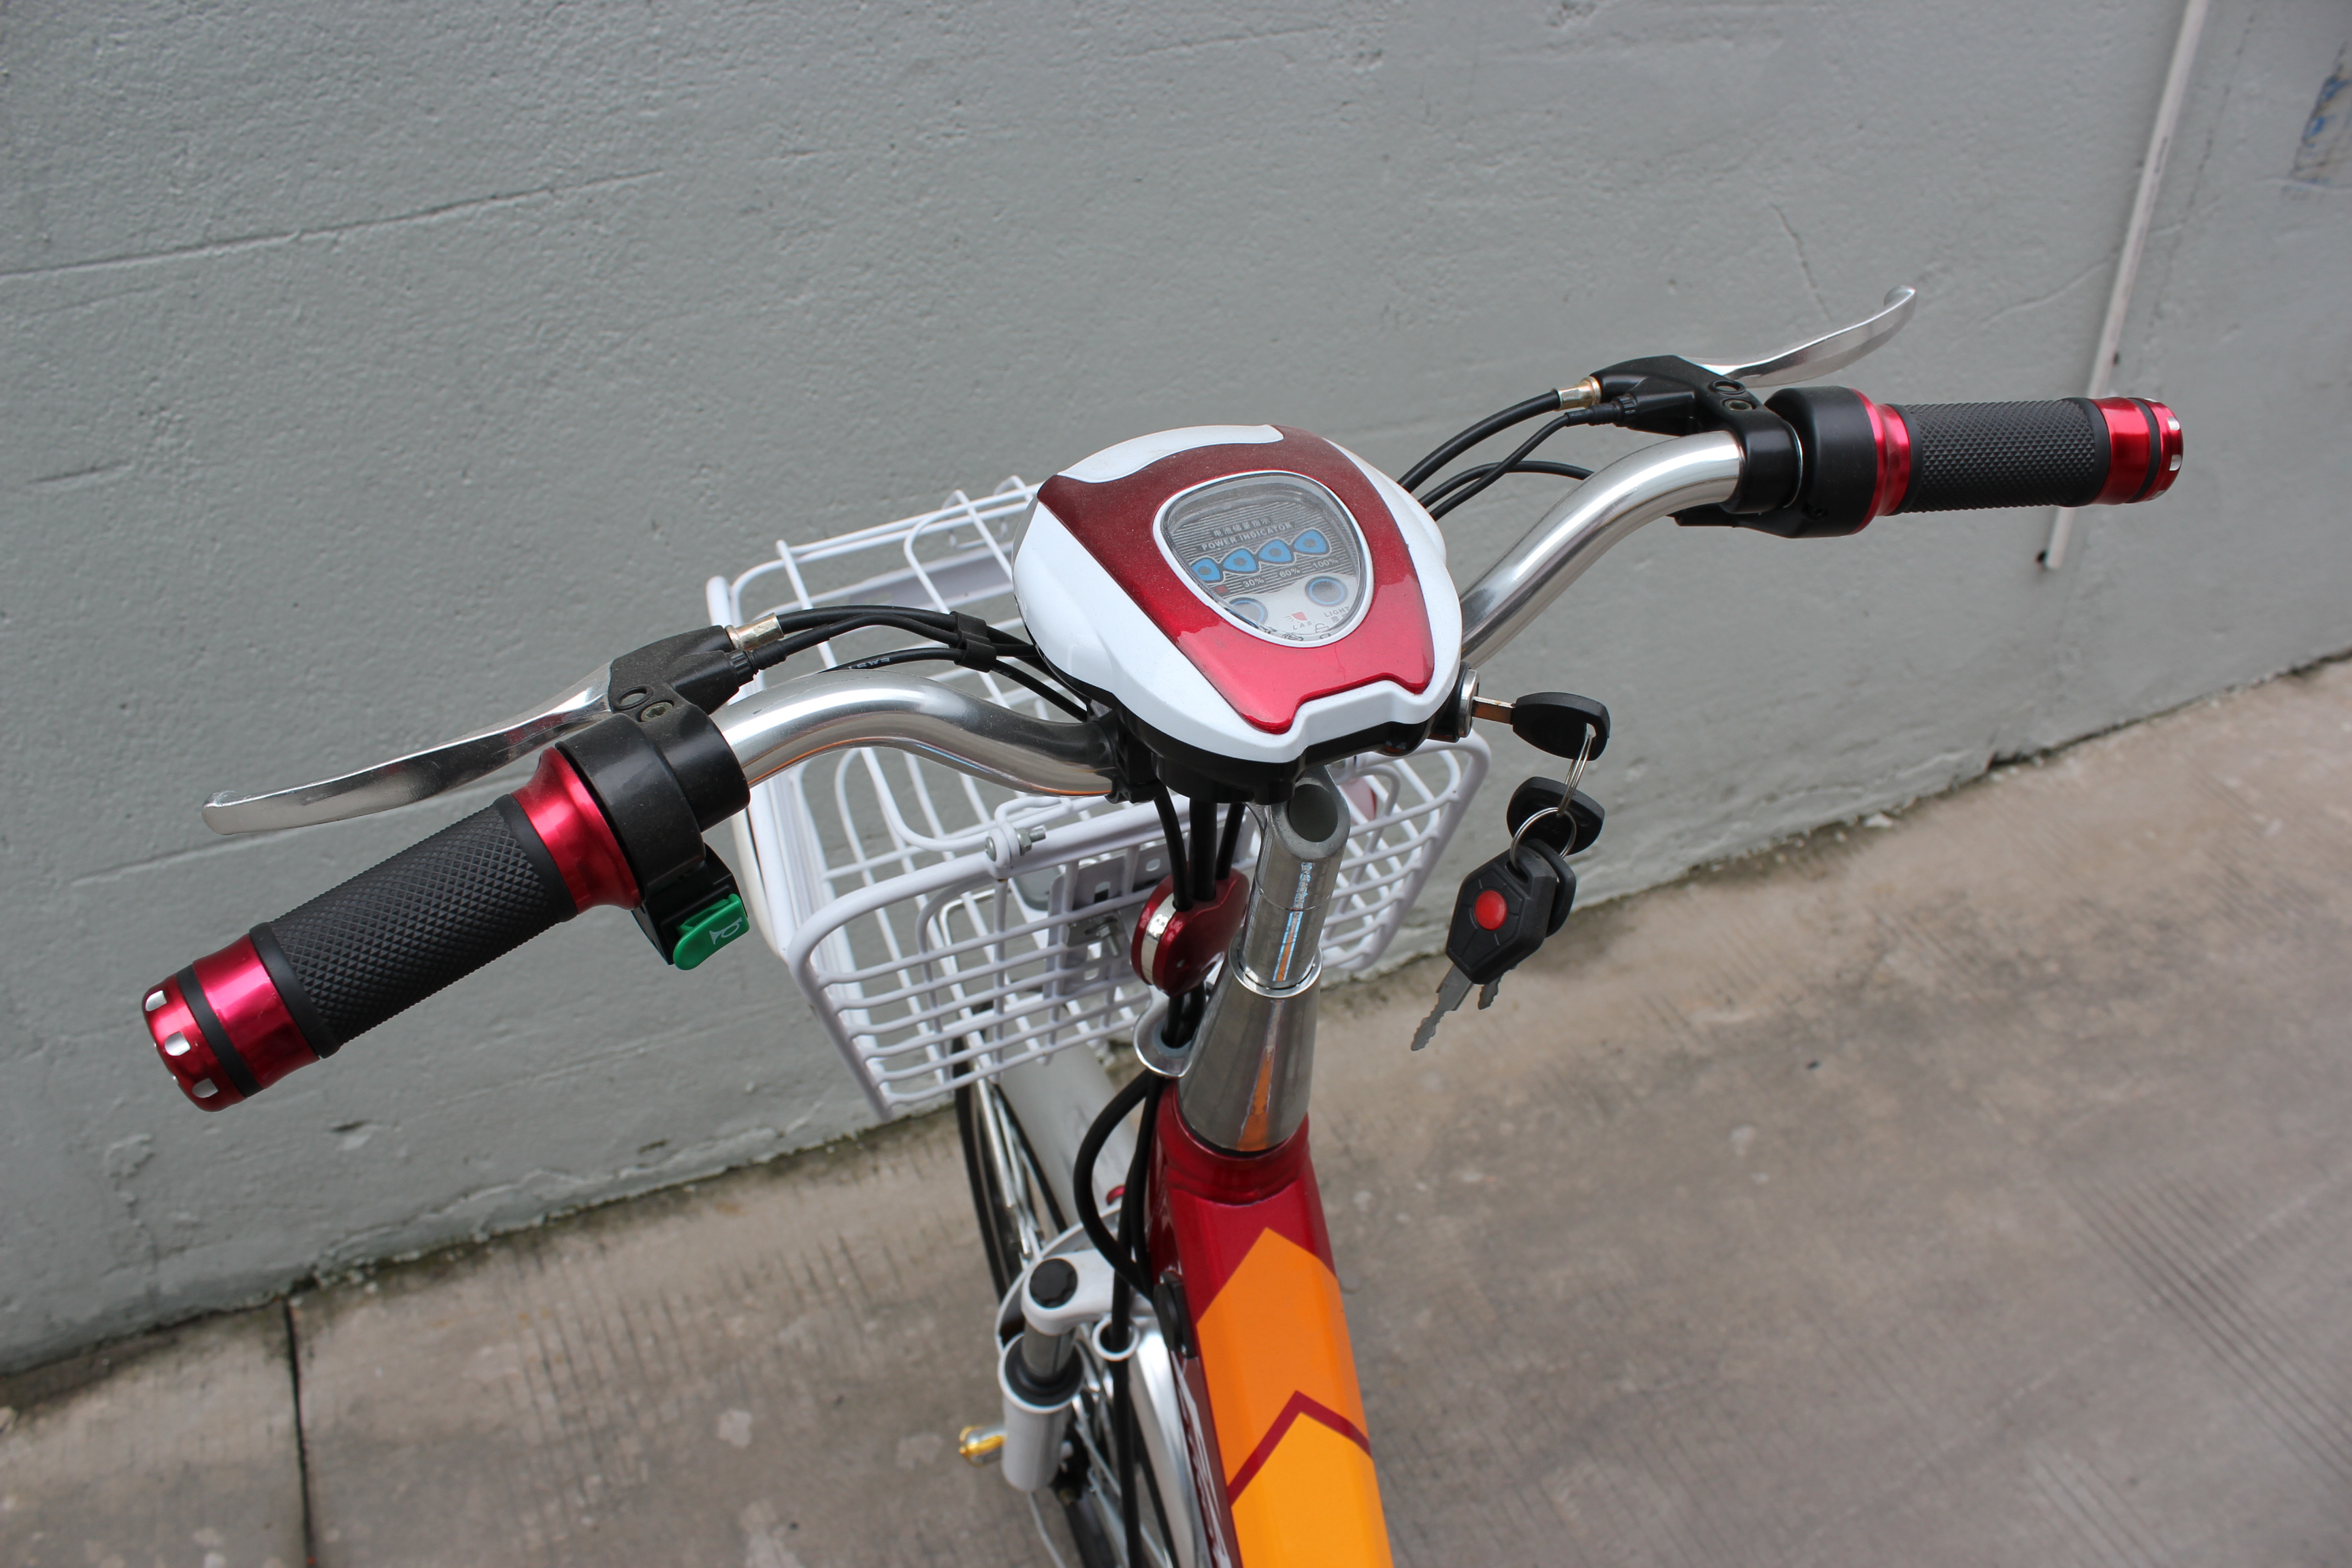 SY-LT_Details_handlebar with speedometer